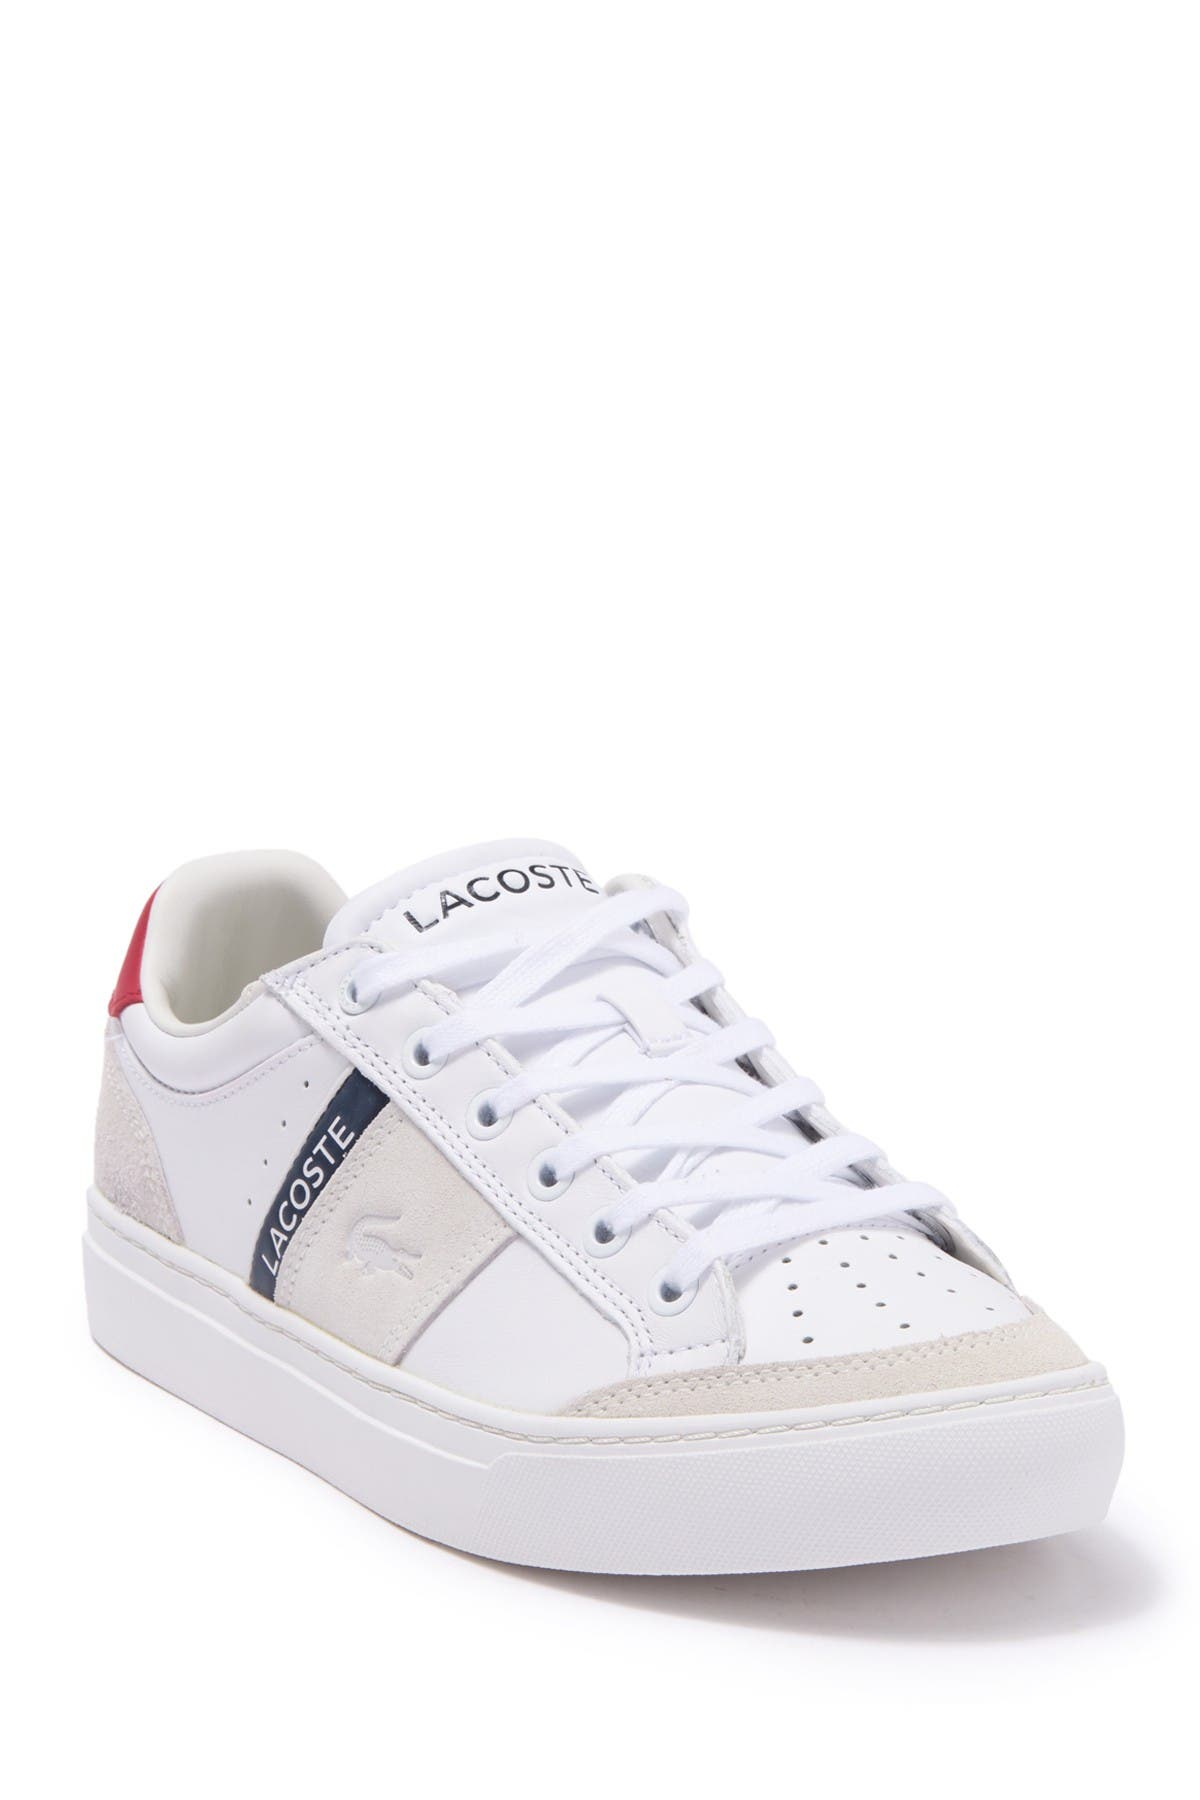 Image of Lacoste Courtline Sneaker